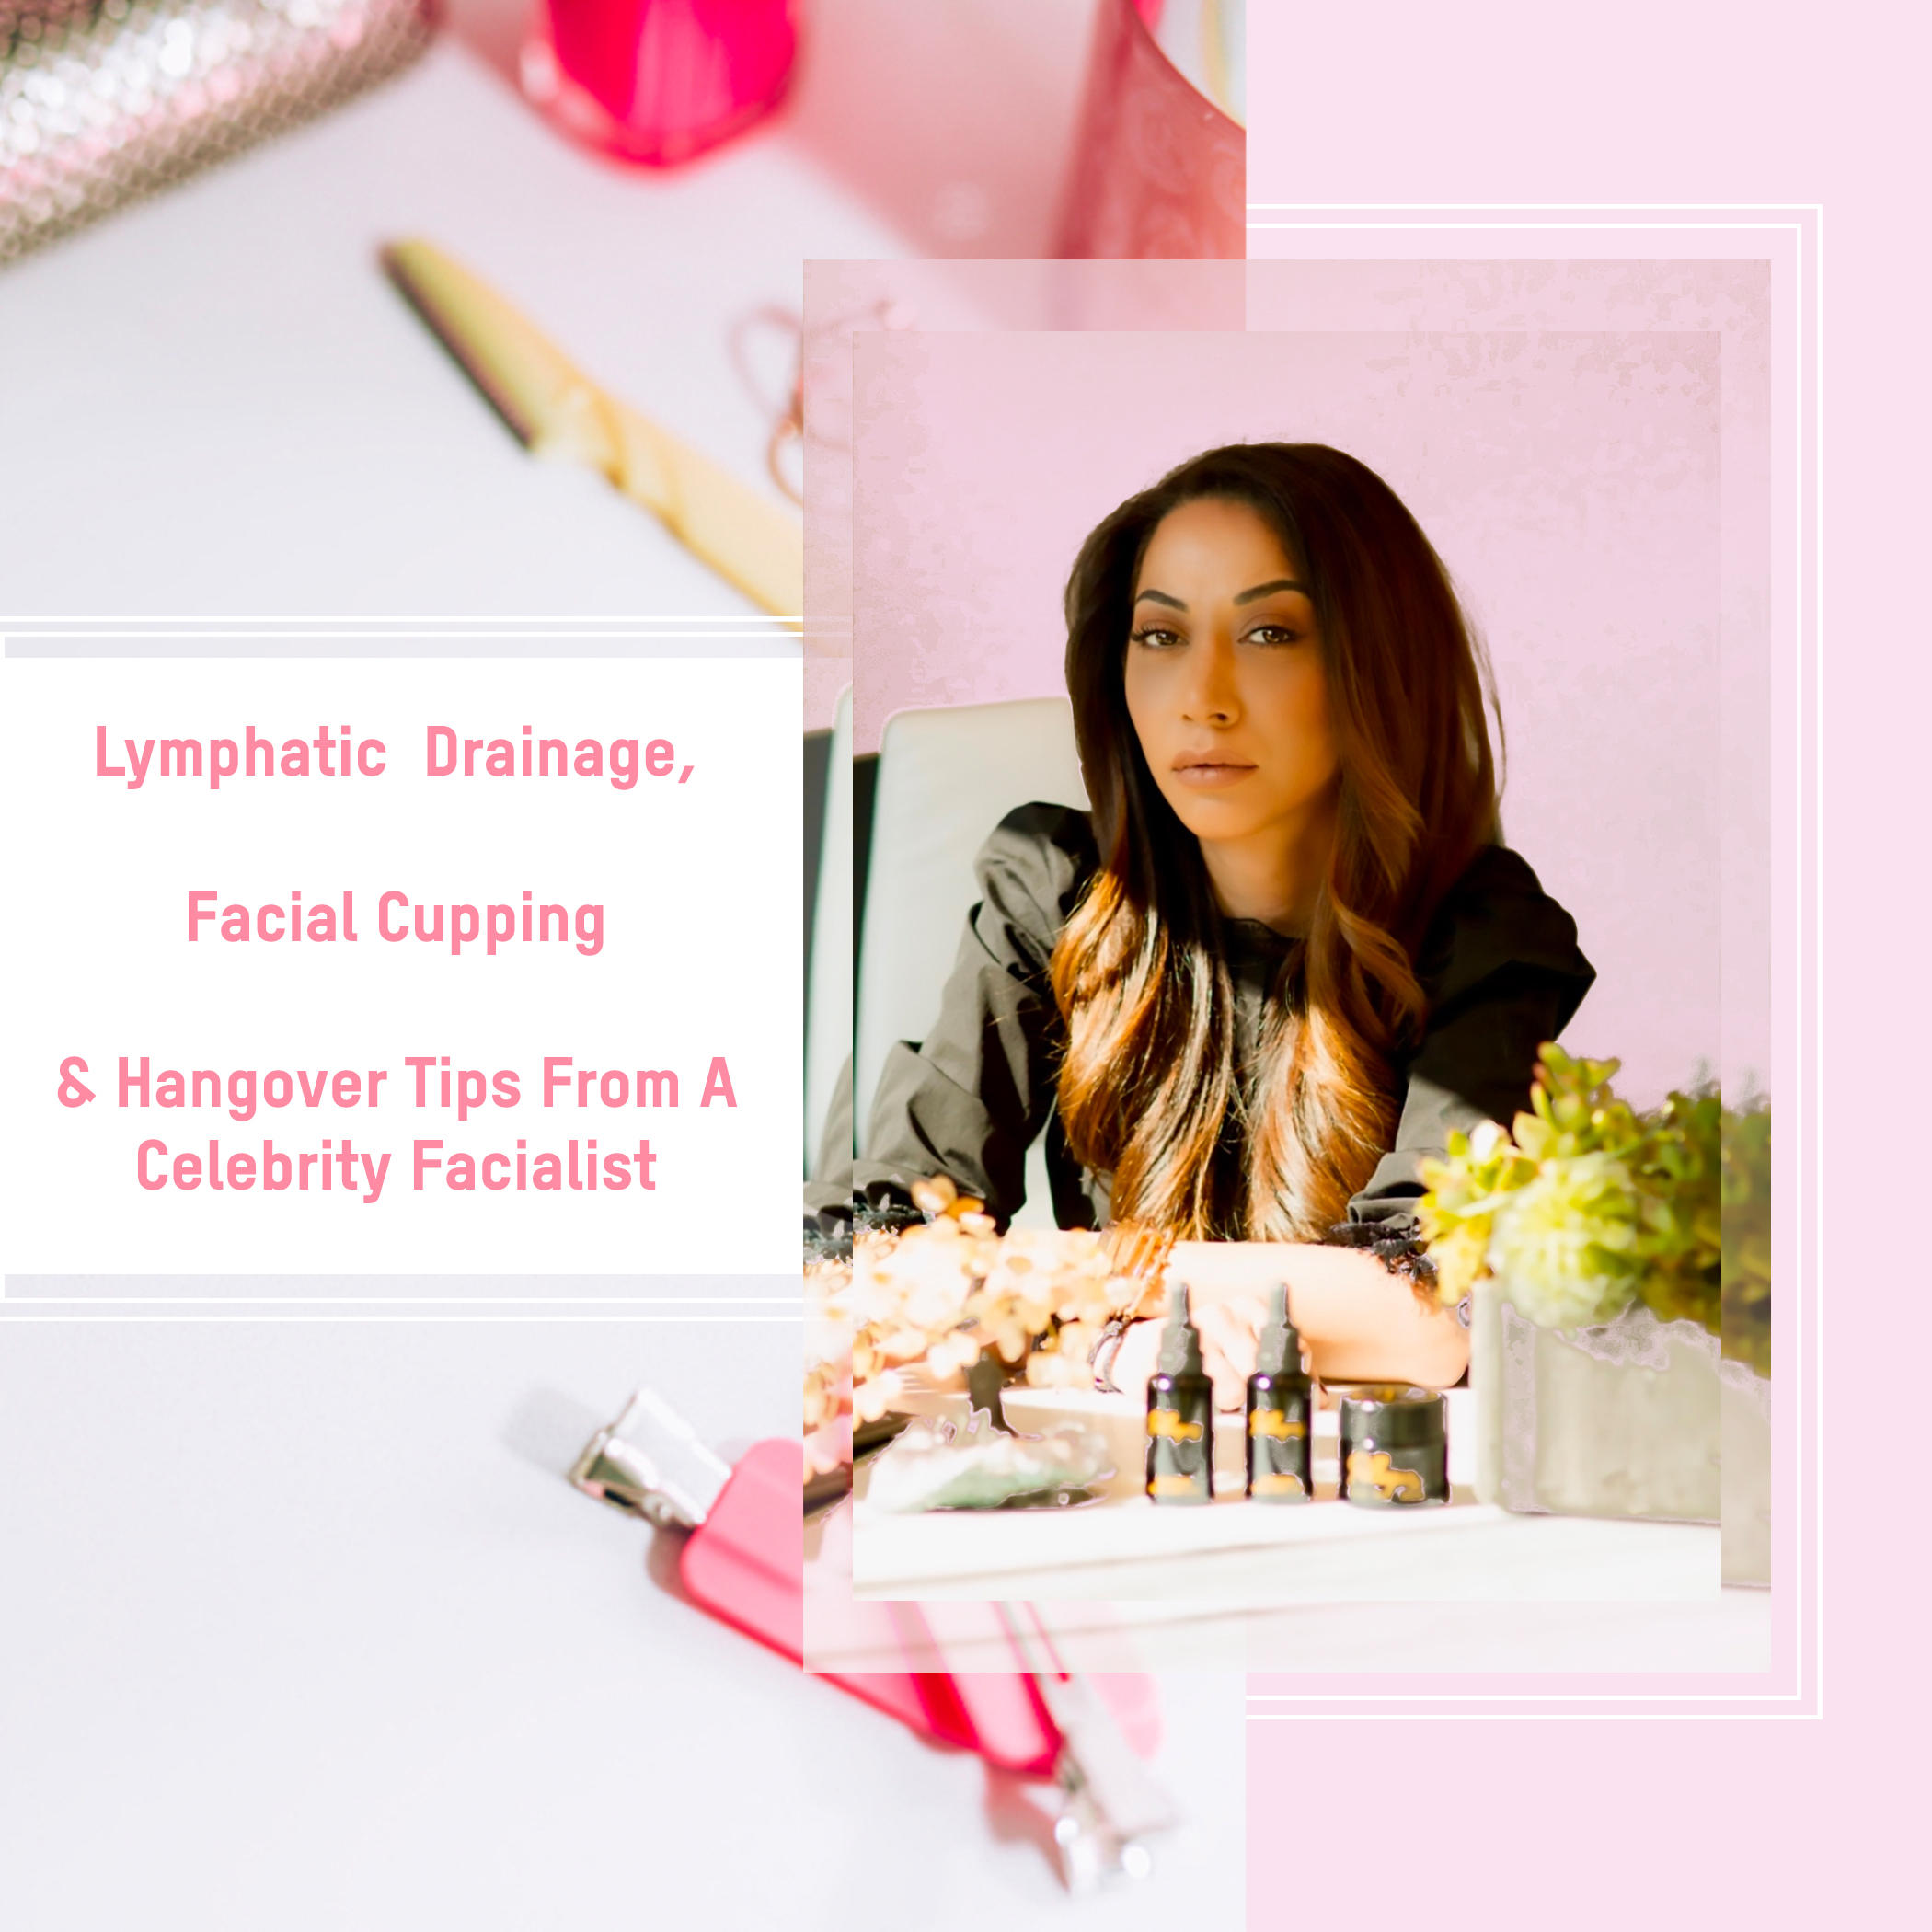 Lymphatic Drainage, Facial Cupping & Hangover Tips From A Celebrity Facialist